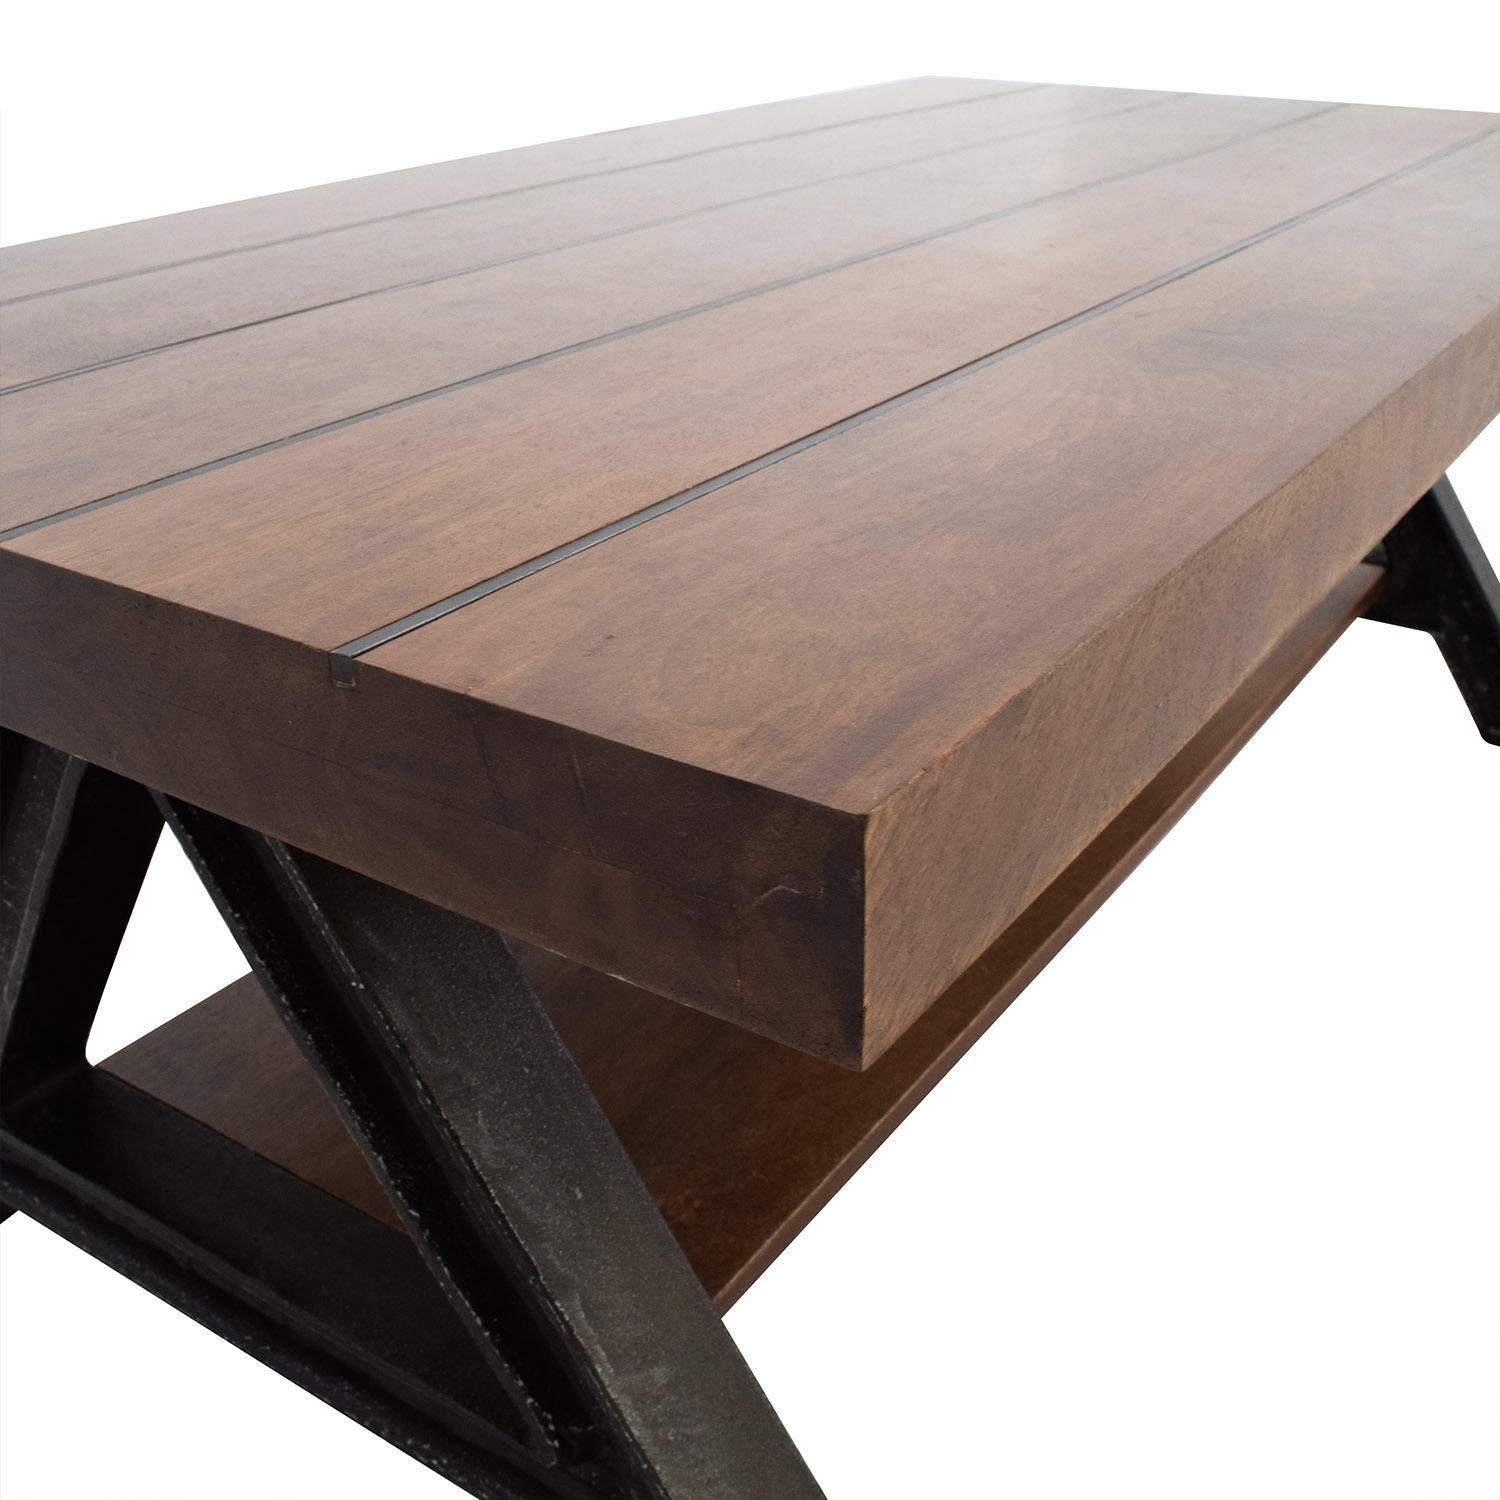 60 Off West Elm West Elm Wood And Metal Coffee Table